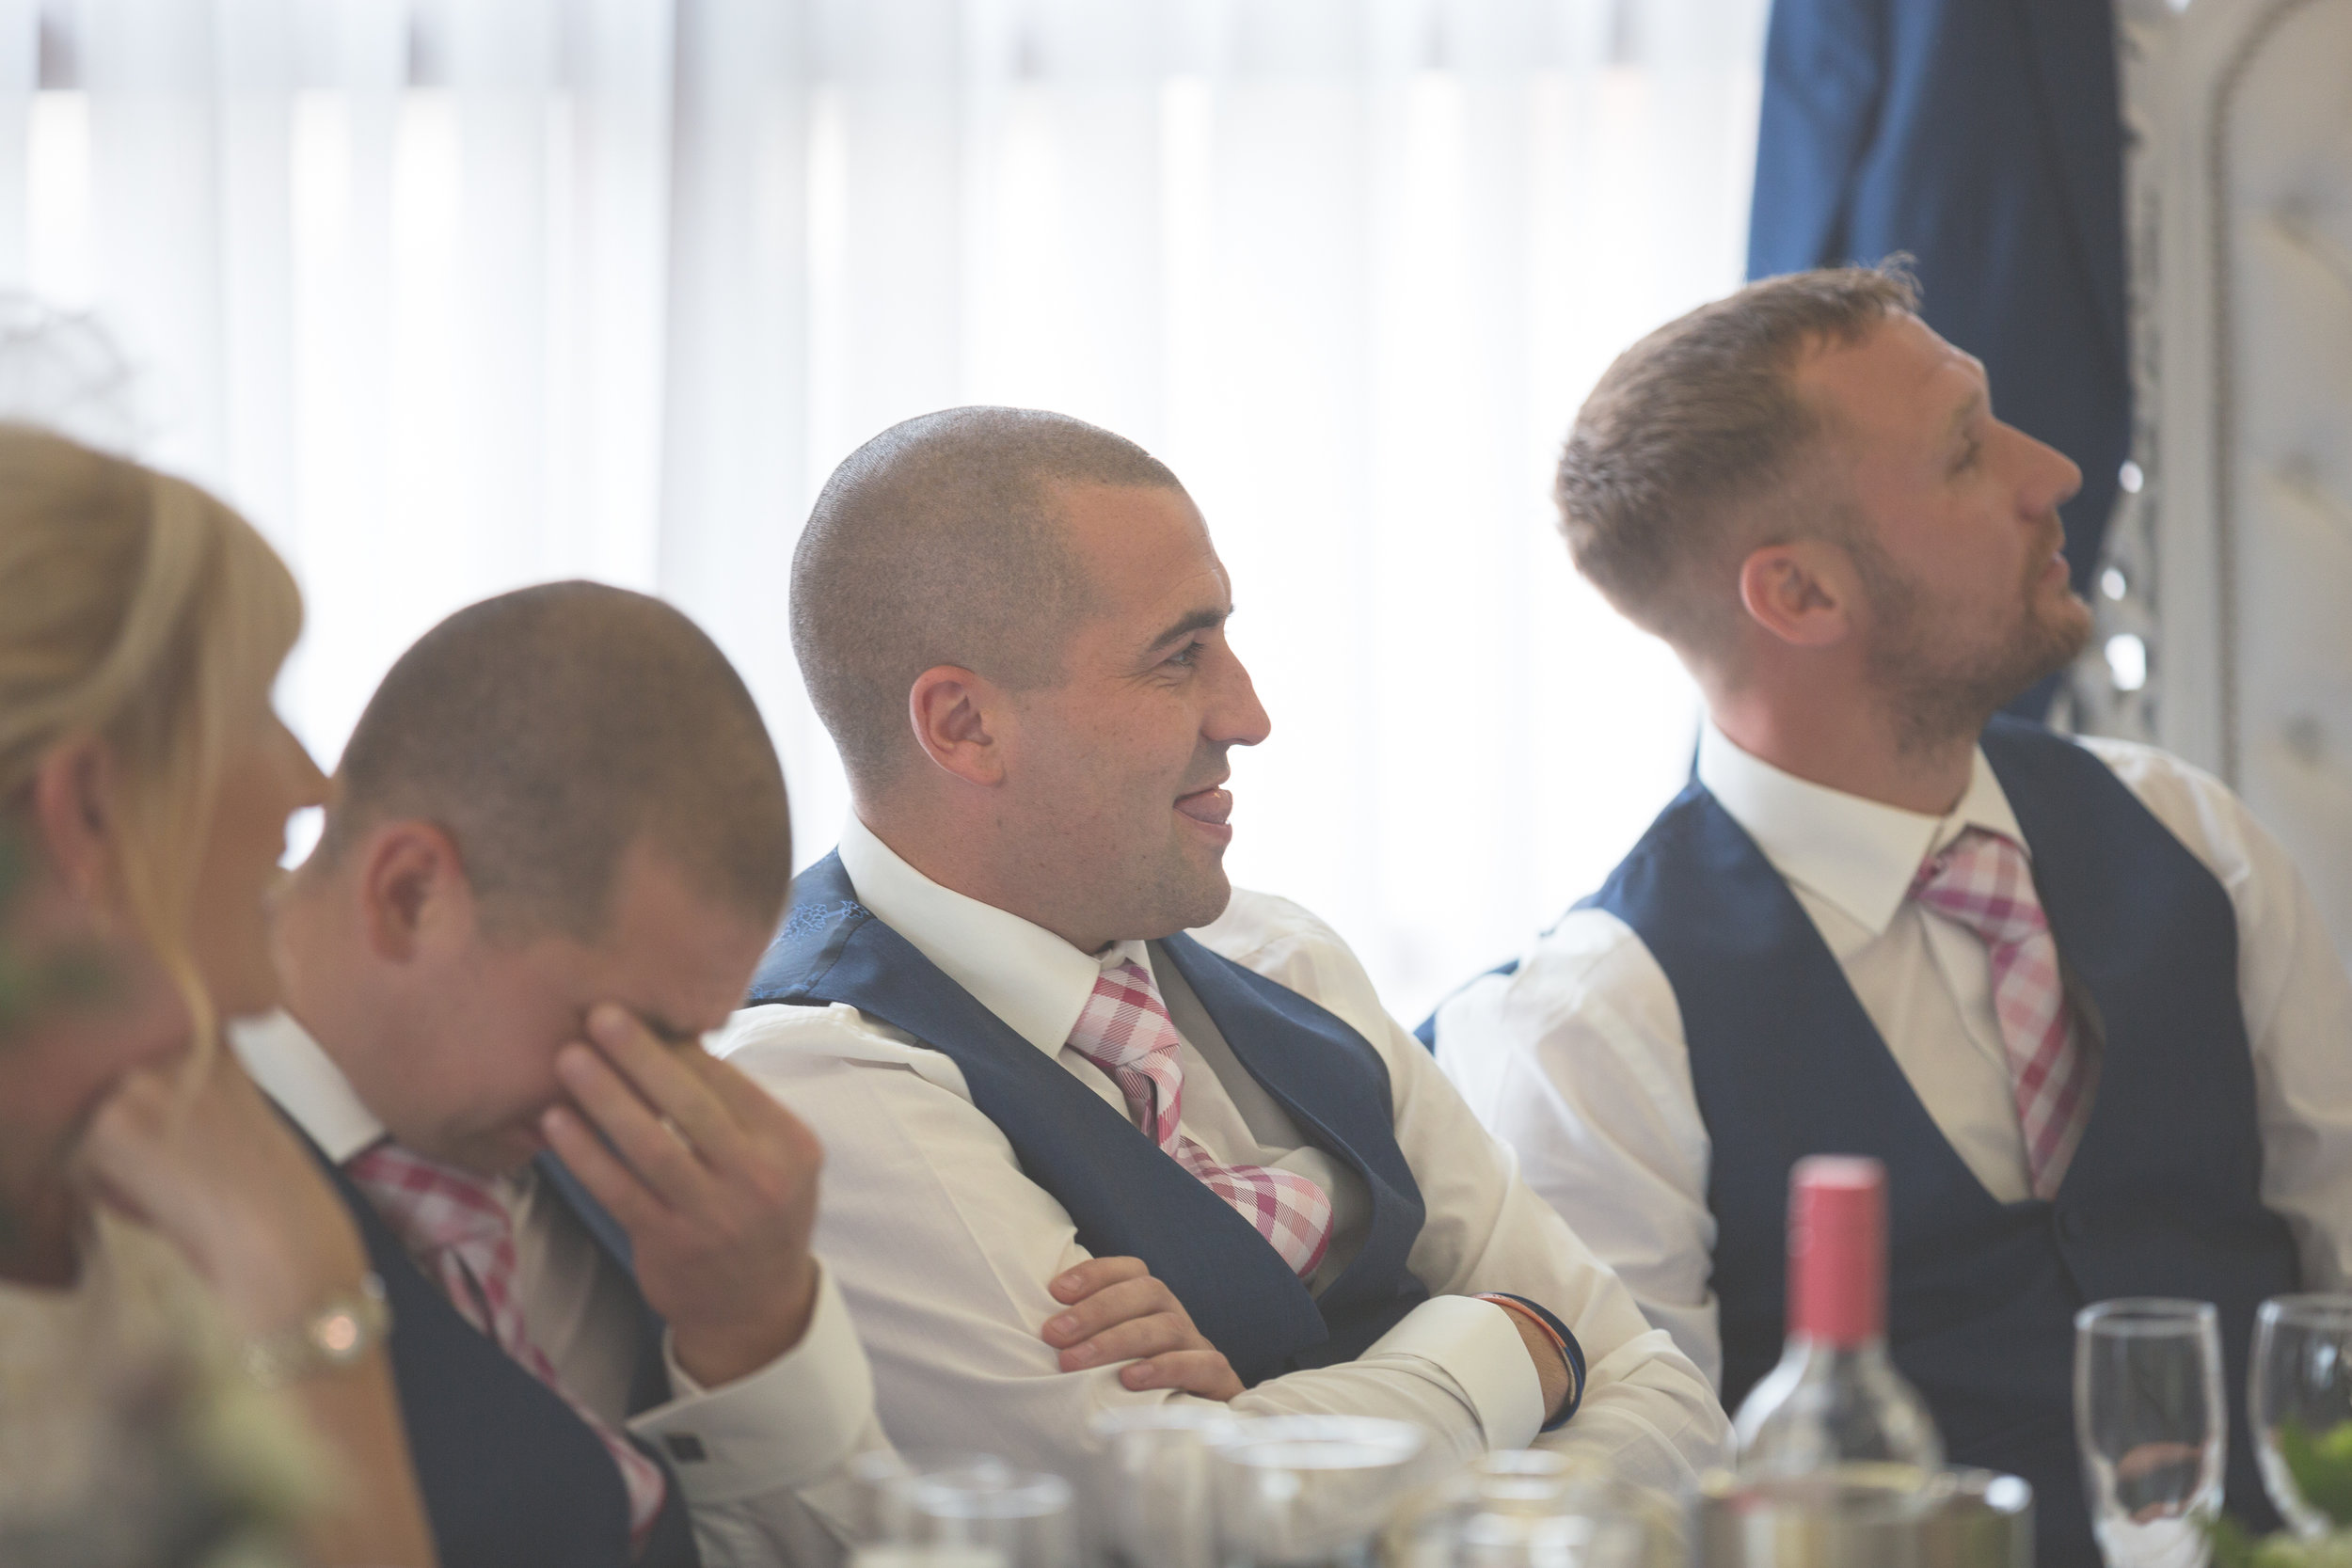 Antoinette & Stephen - Speeches | Brian McEwan Photography | Wedding Photographer Northern Ireland 76.jpg